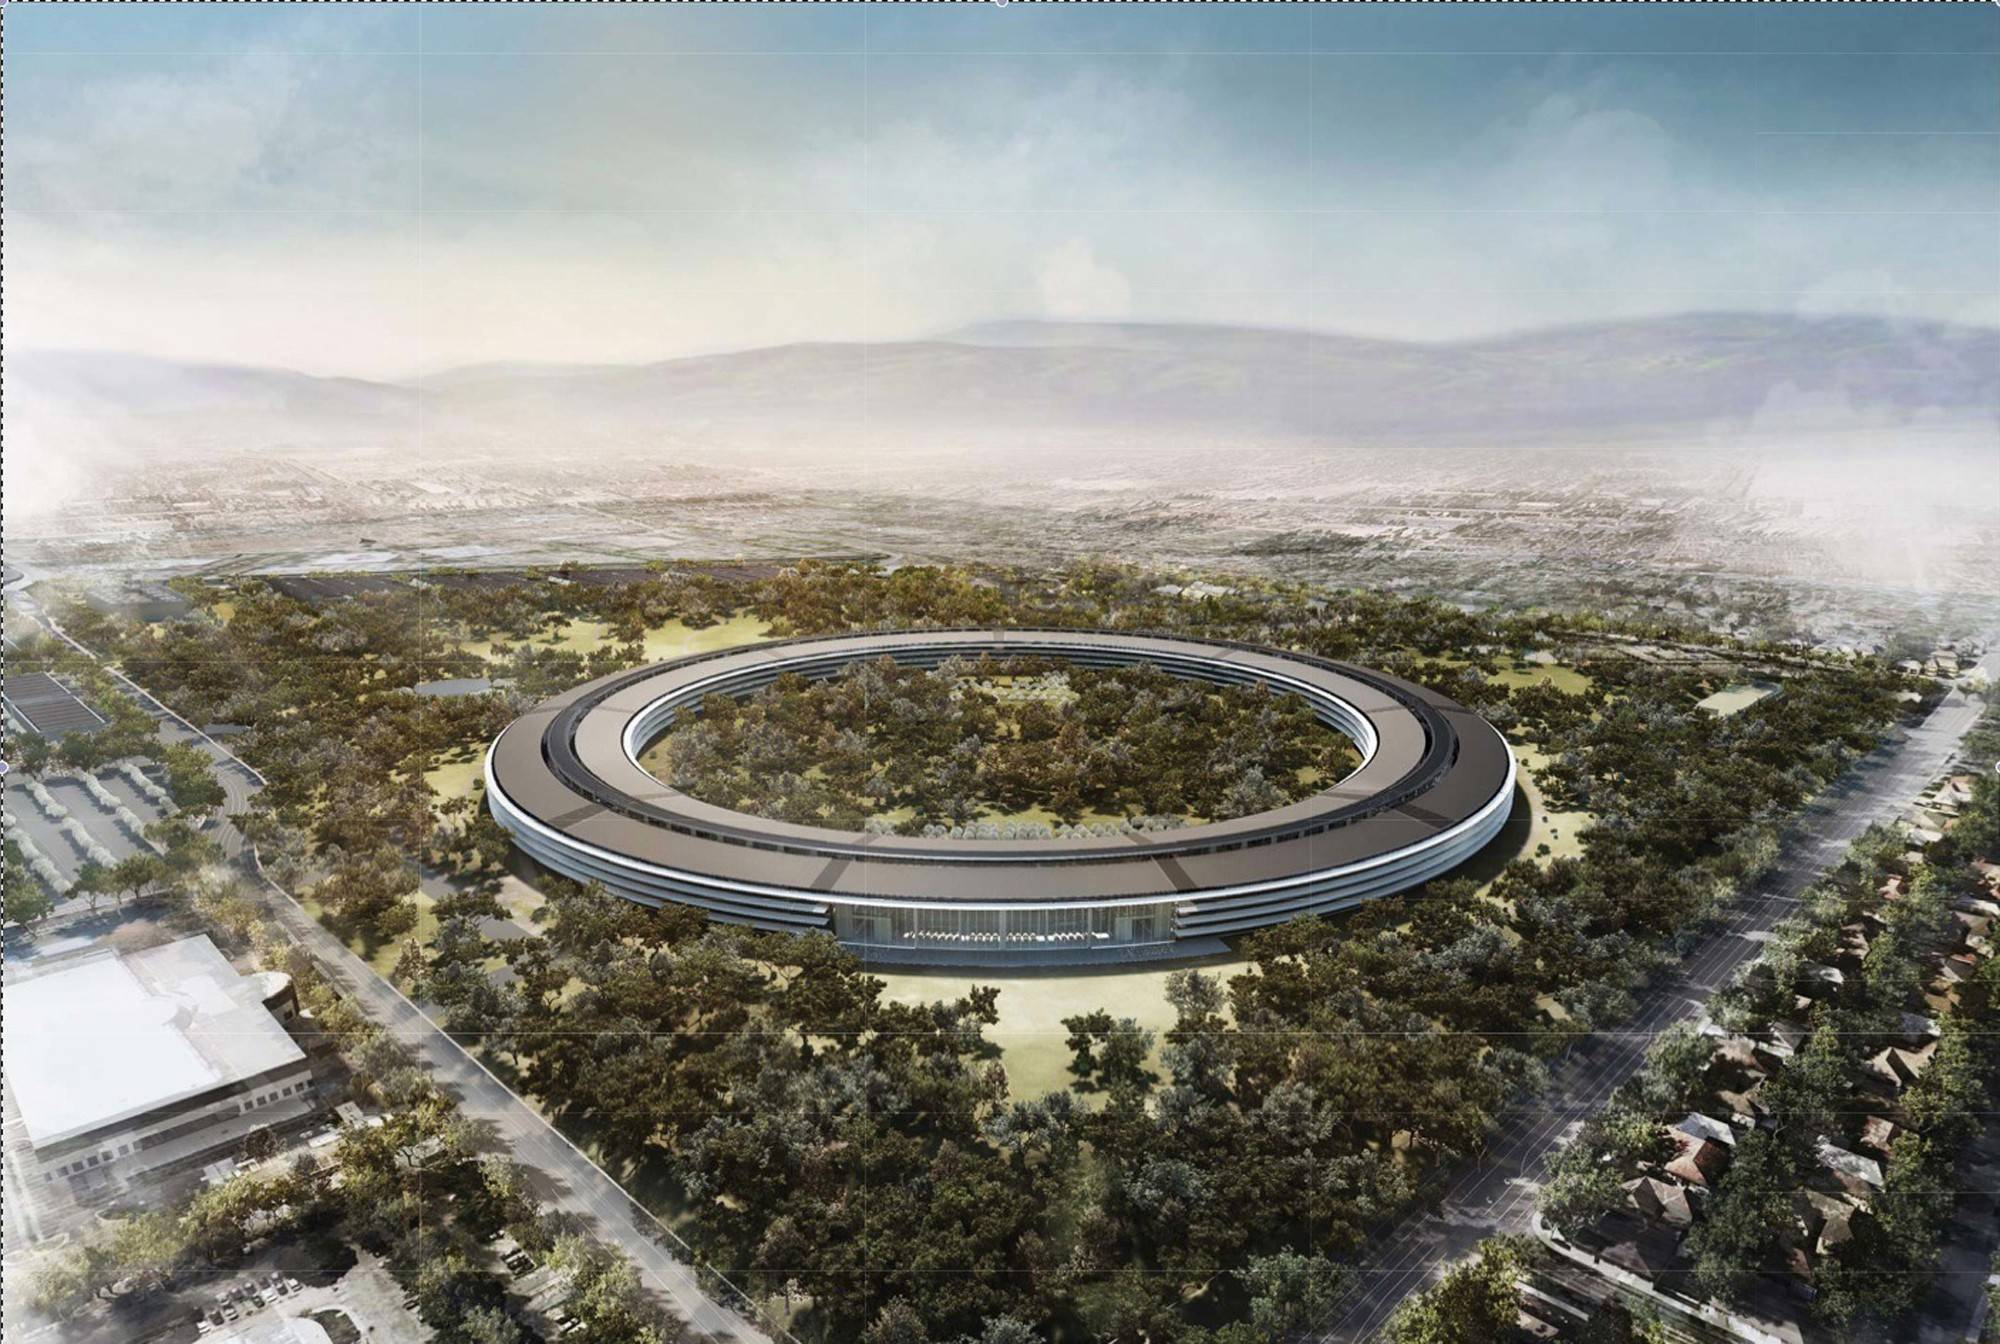 New apple office cupertino Spaceship An Aerial Rendering Of The Planned Apple Computer Headquarters Before It Was Built In Cupertino Daily Herald Suburbs Eye New Apple Campus Announced Wednesday